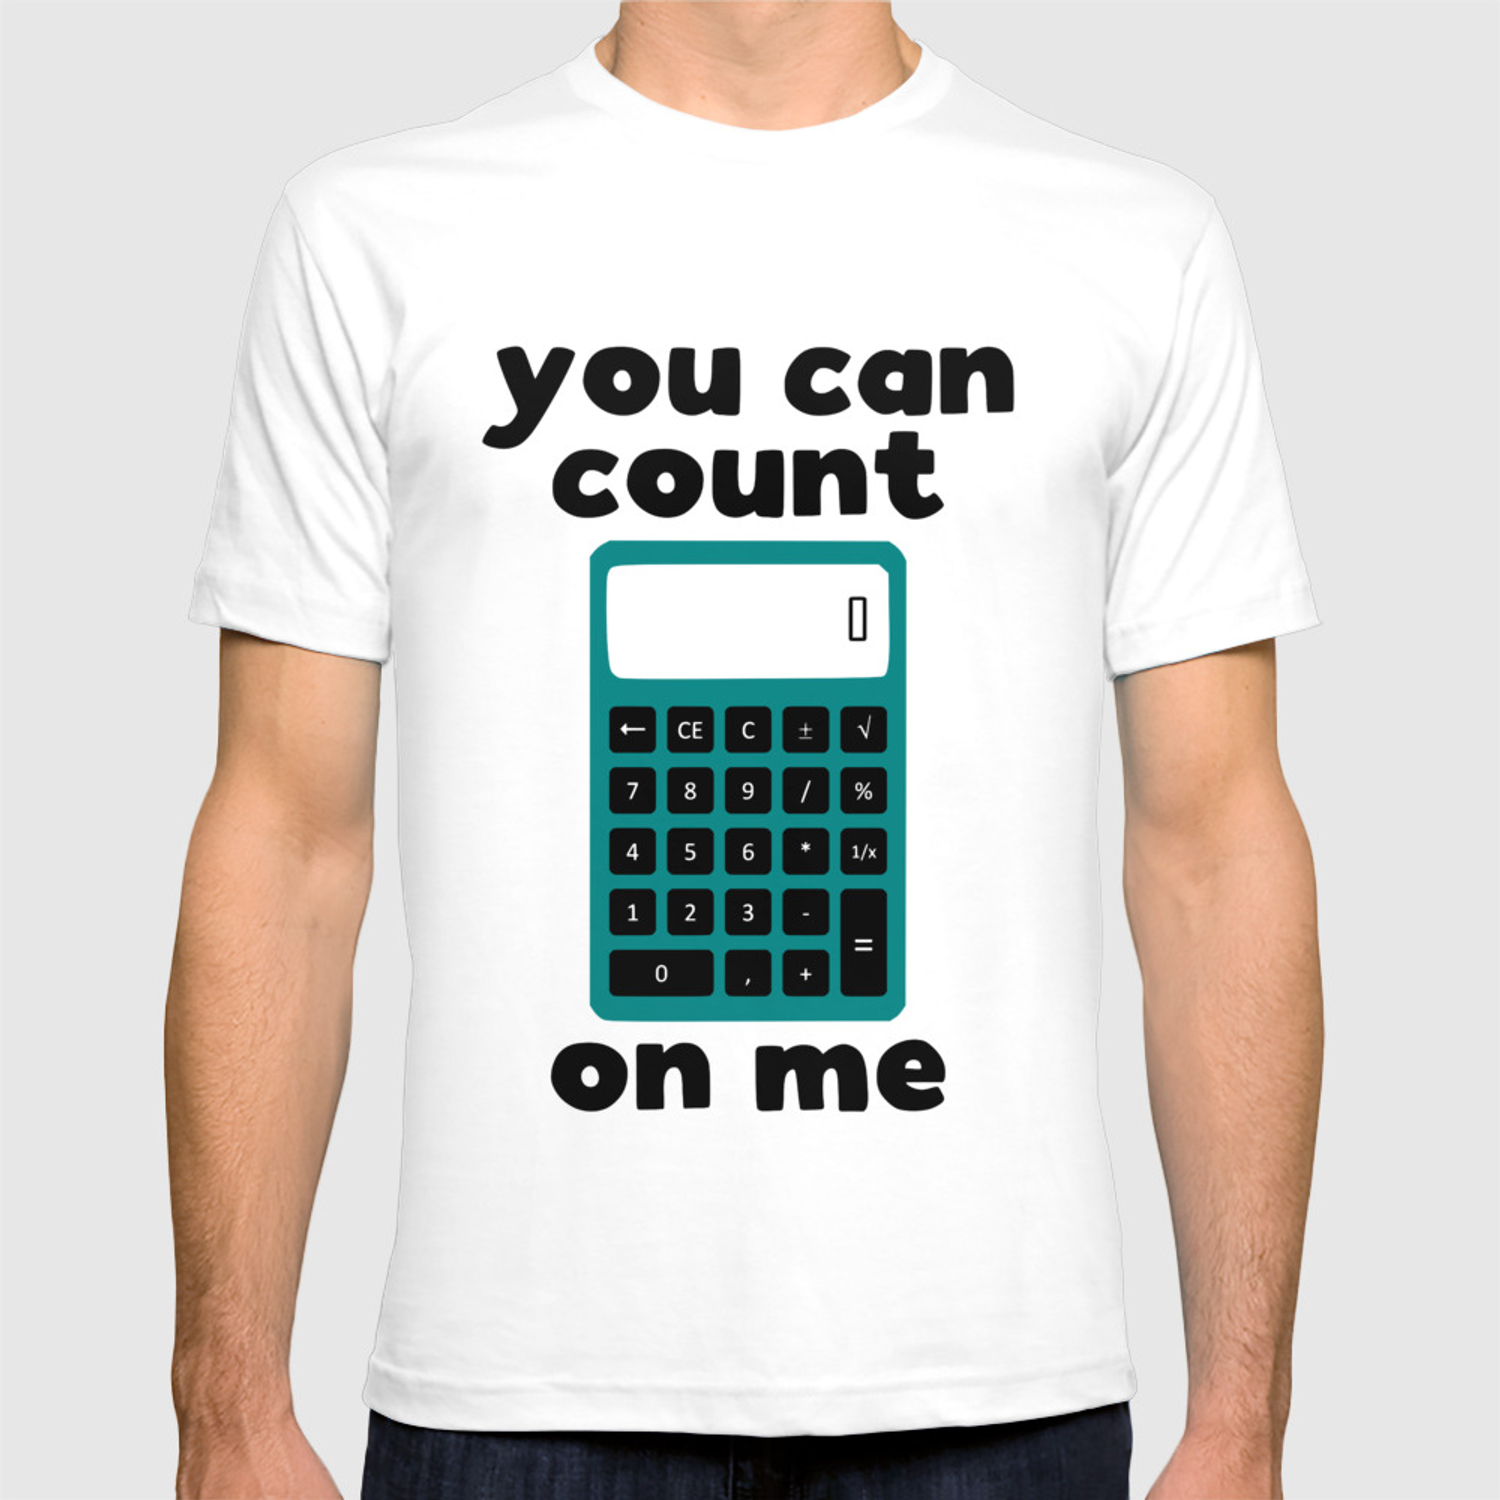 8a979746 You can count on me - funny calculator print T-shirt by kapotka ...